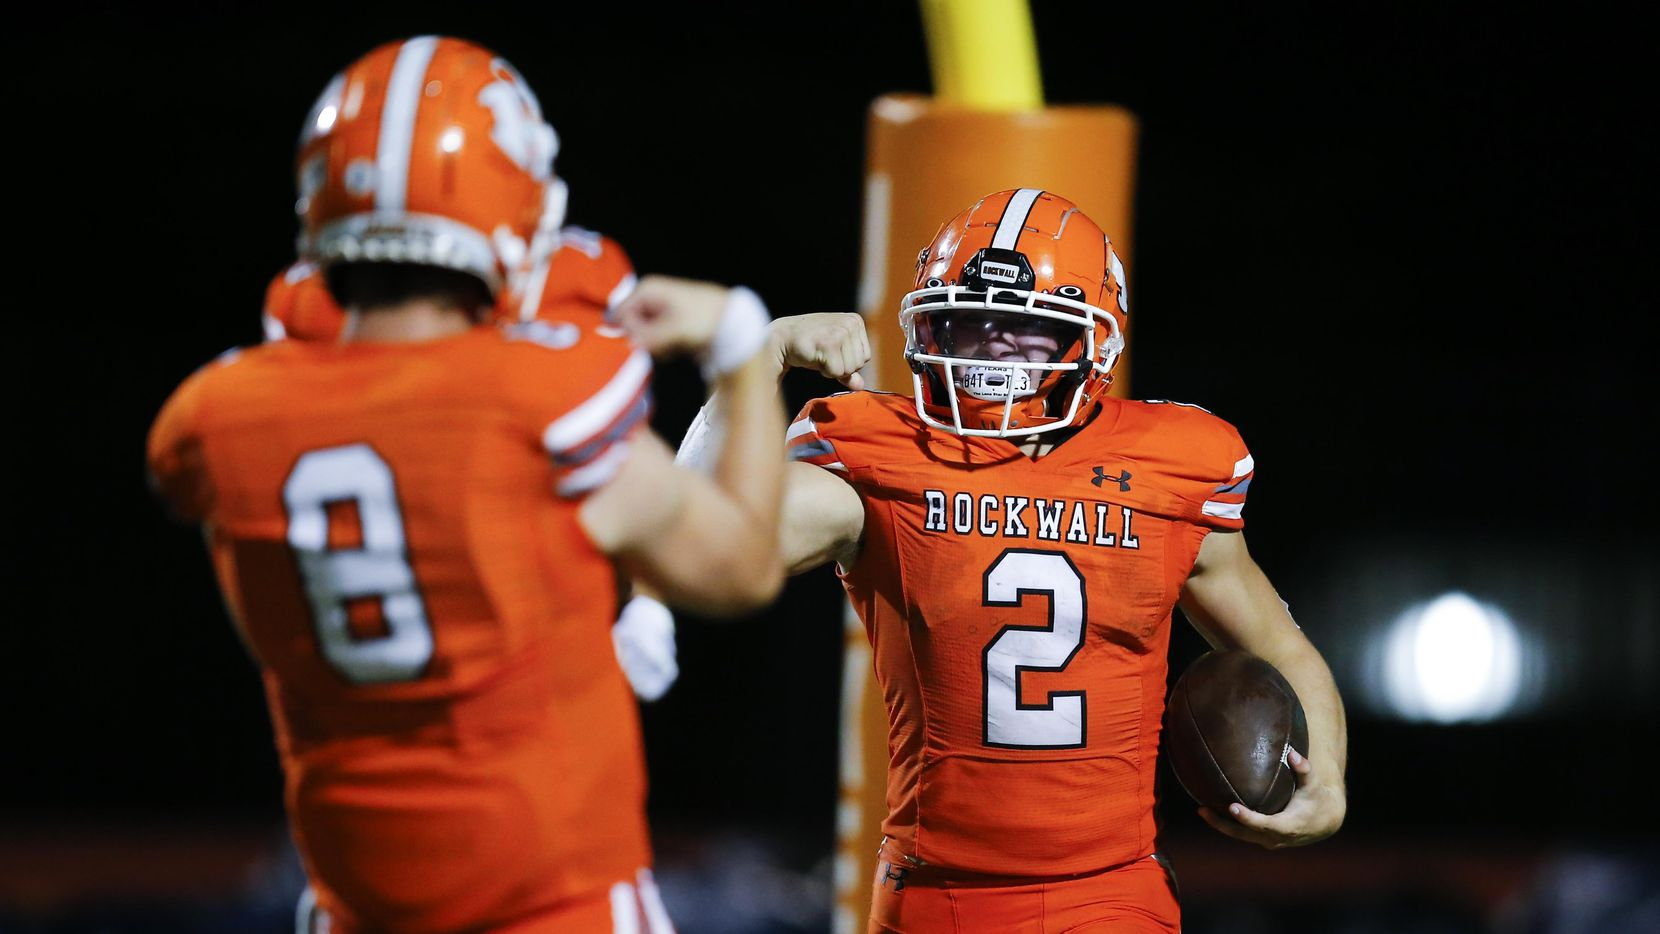 Rockwall junior running back Zach Hernandez (2) is congratulated by senior quarterback Braedyn Locke (8) after scoring a touchdown during the first half of a high school football game against Jesuit at Wilkerson-Sanders Stadium in Rockwall, Friday, September 3, 2021.